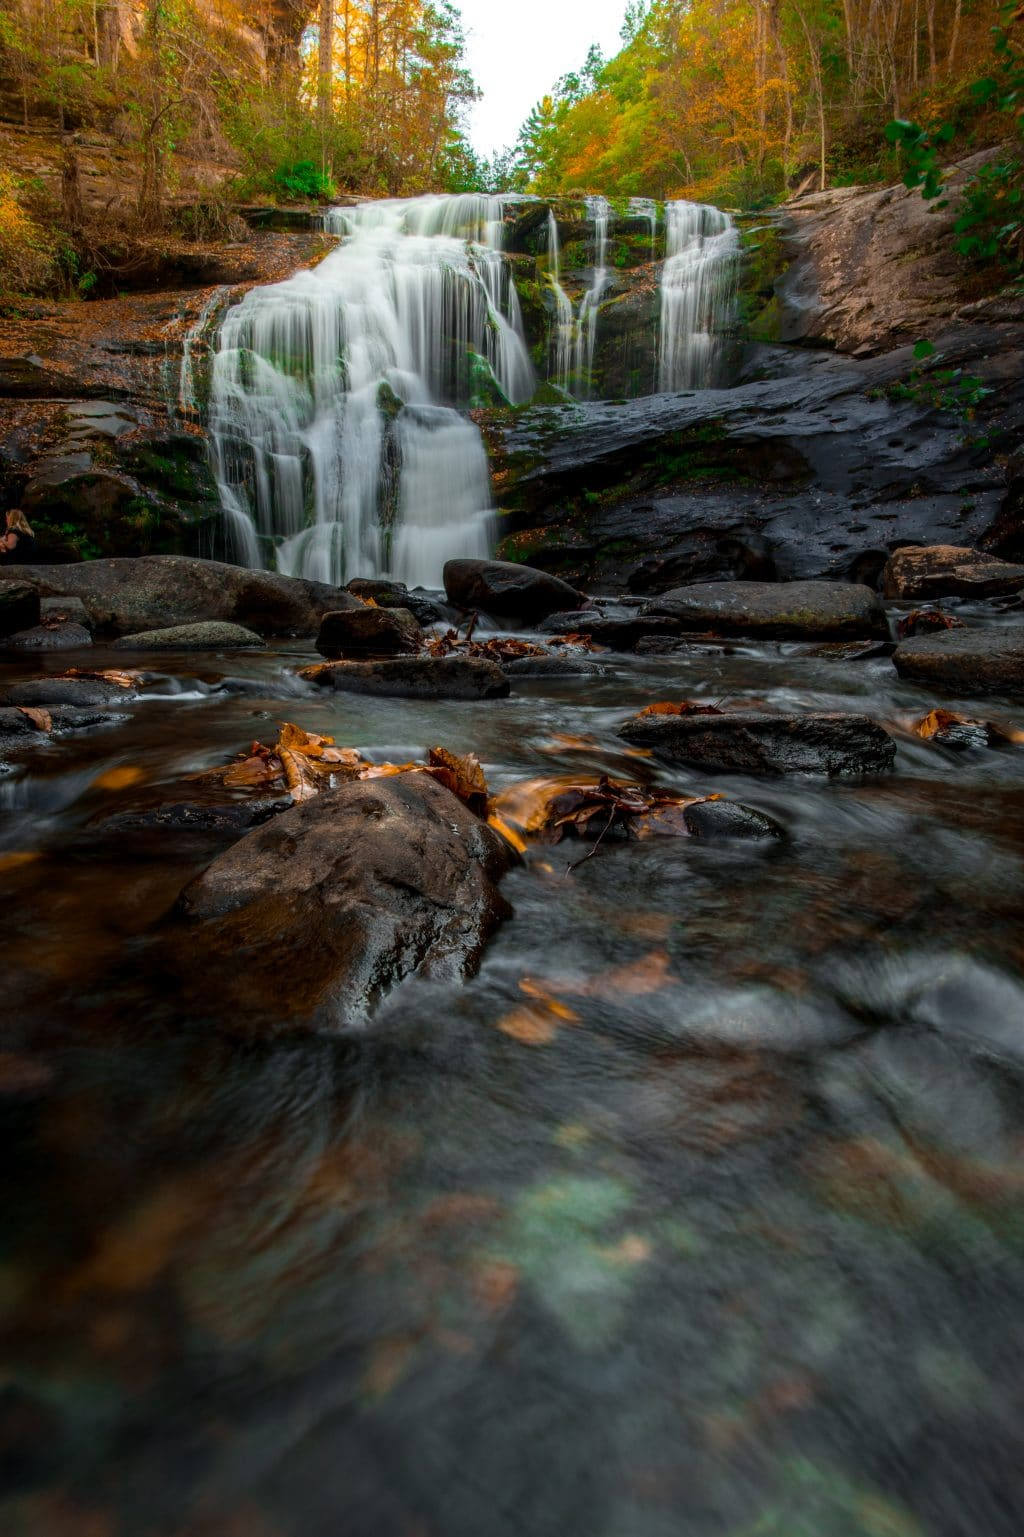 Autumn Waterfall with leaves